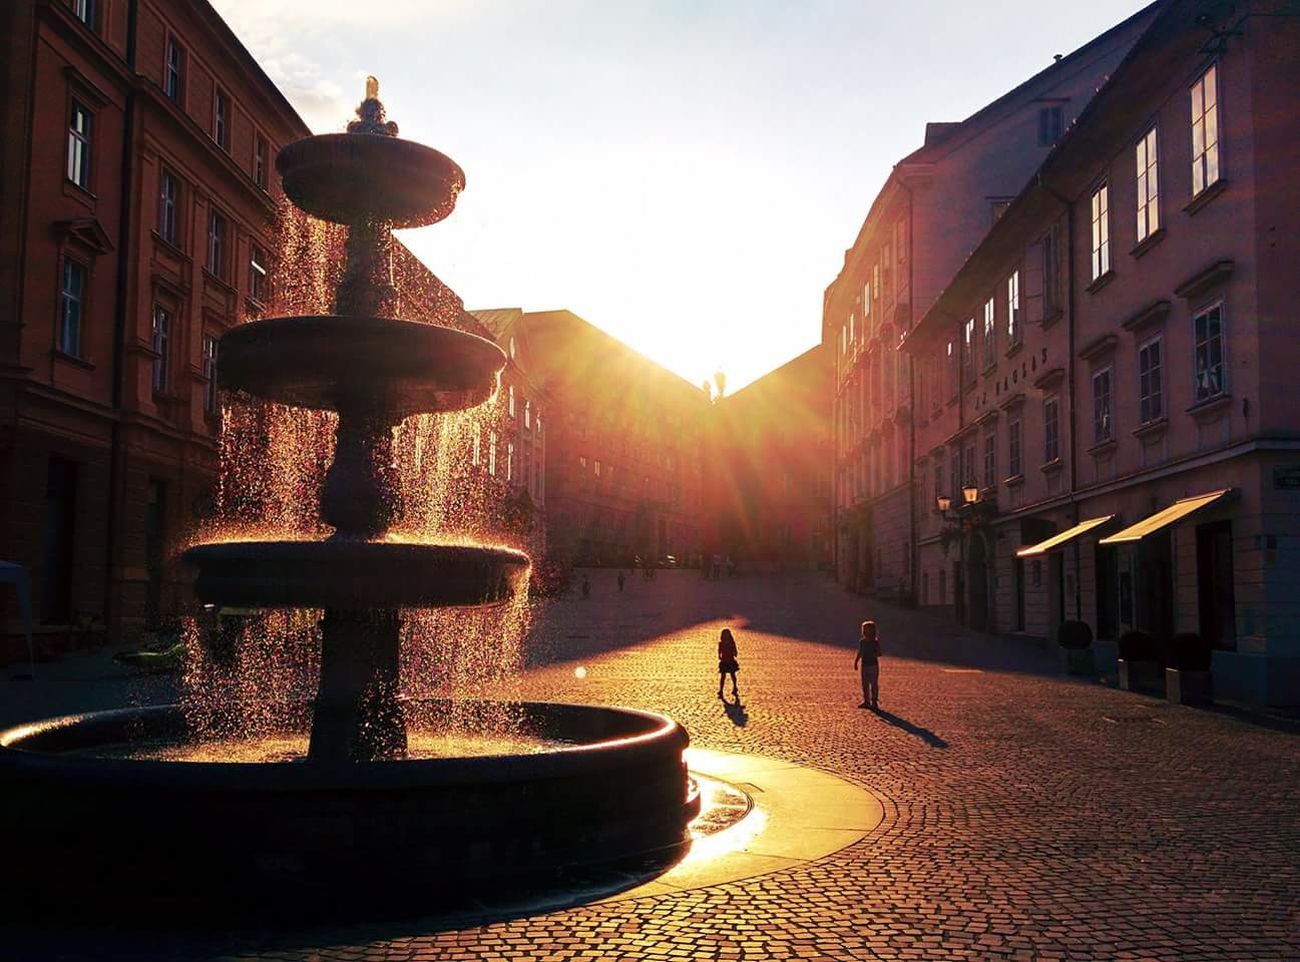 Building Exterior Water Built Structure Architecture City Outdoors Fountain YouthSunset Positive Vibes Ljubljanamoments Slovenia Beautiful Light Best Light Picoftheday Photooftheday Ljubljana Love Followme EyeEm New Here The Week Of Eyeem The City Light